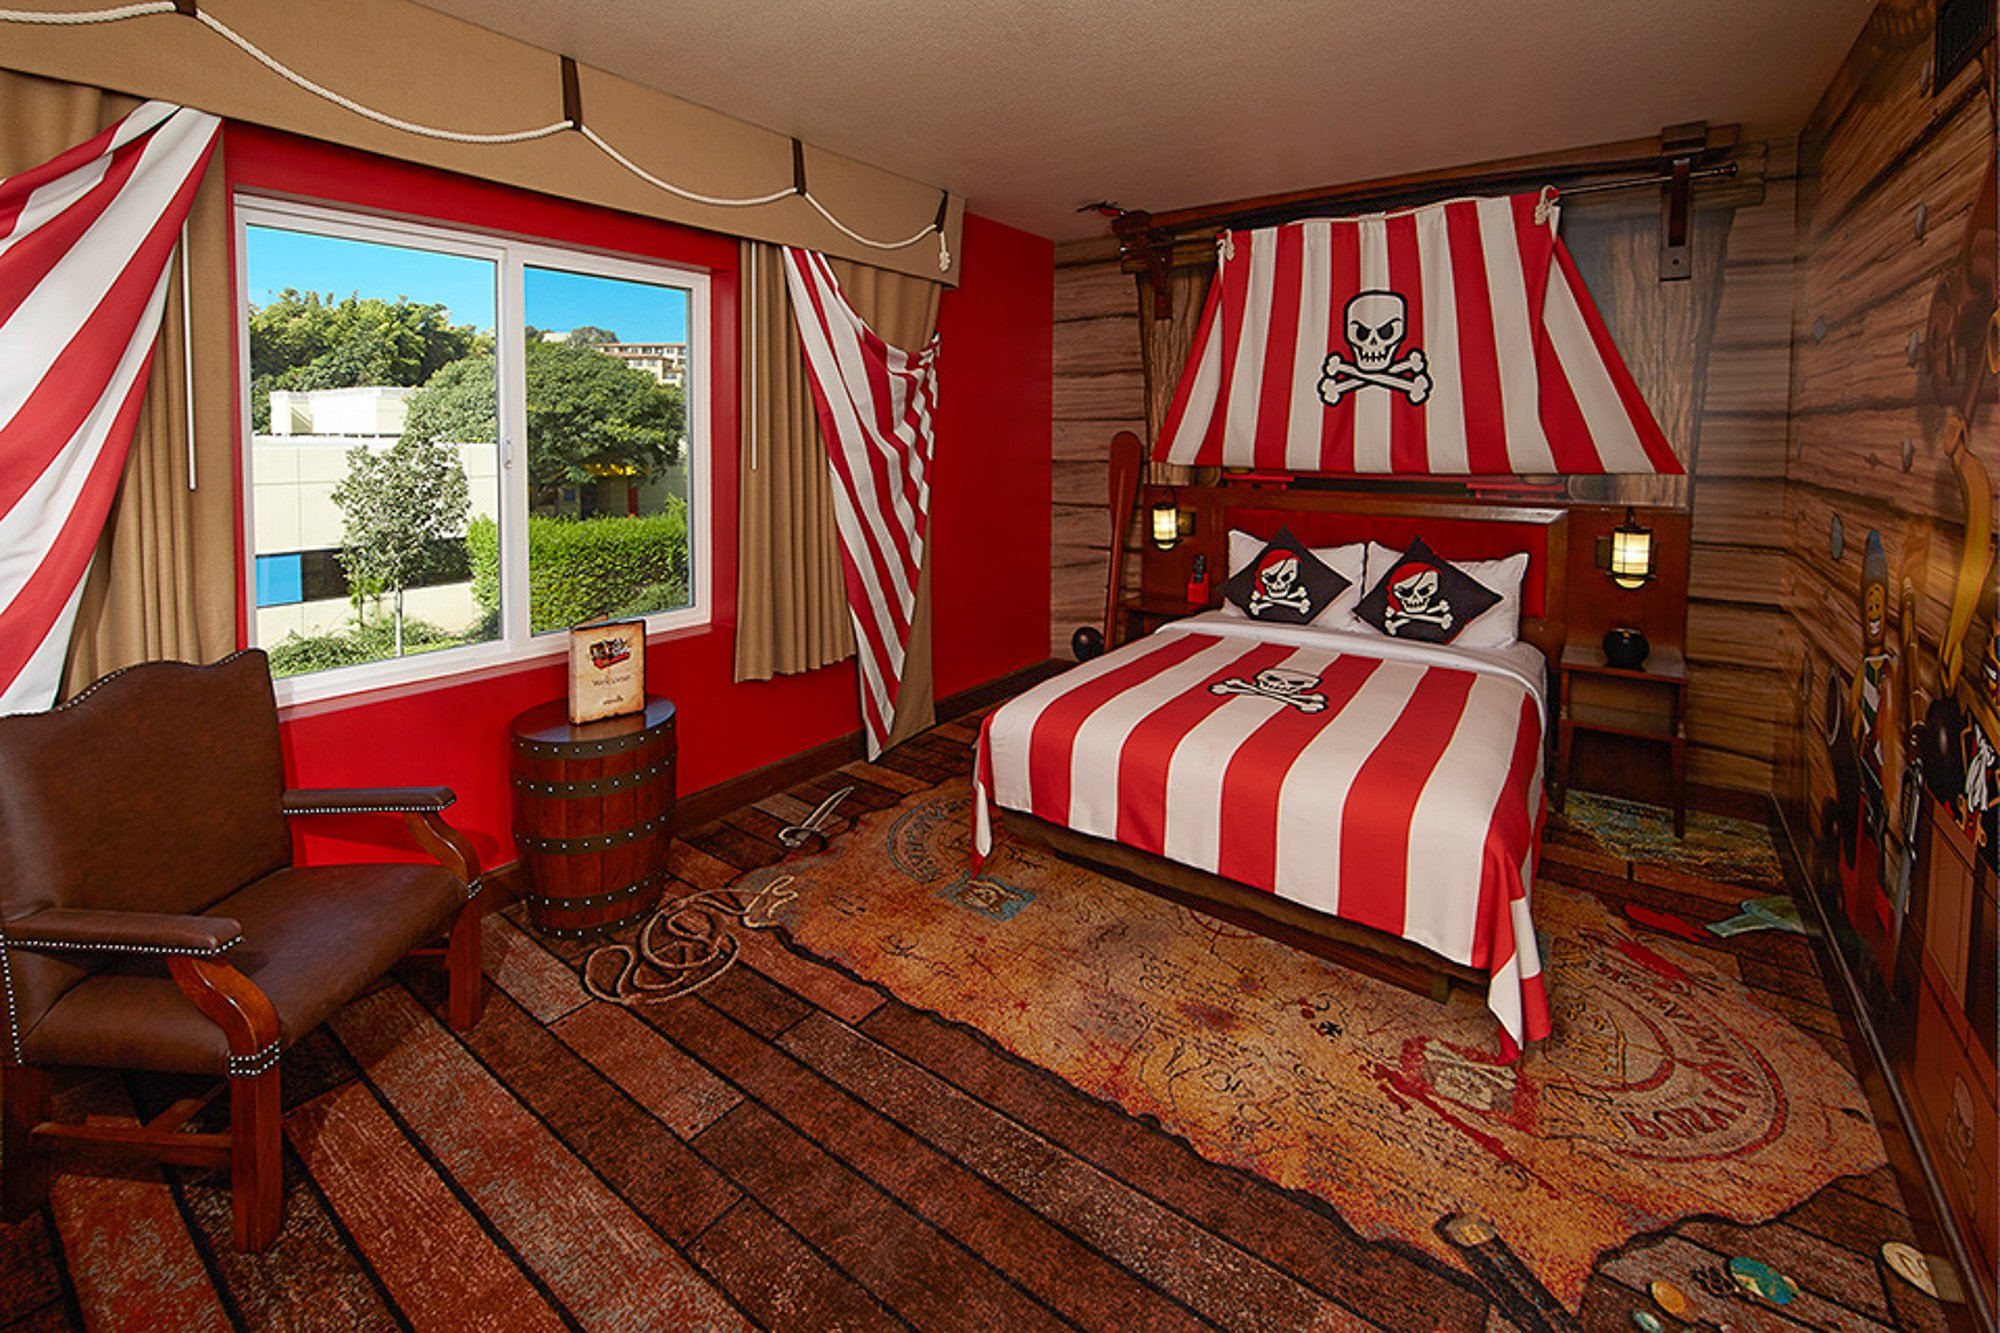 Pirate-themed room at Legoland Hotel in Carlsbad, CA